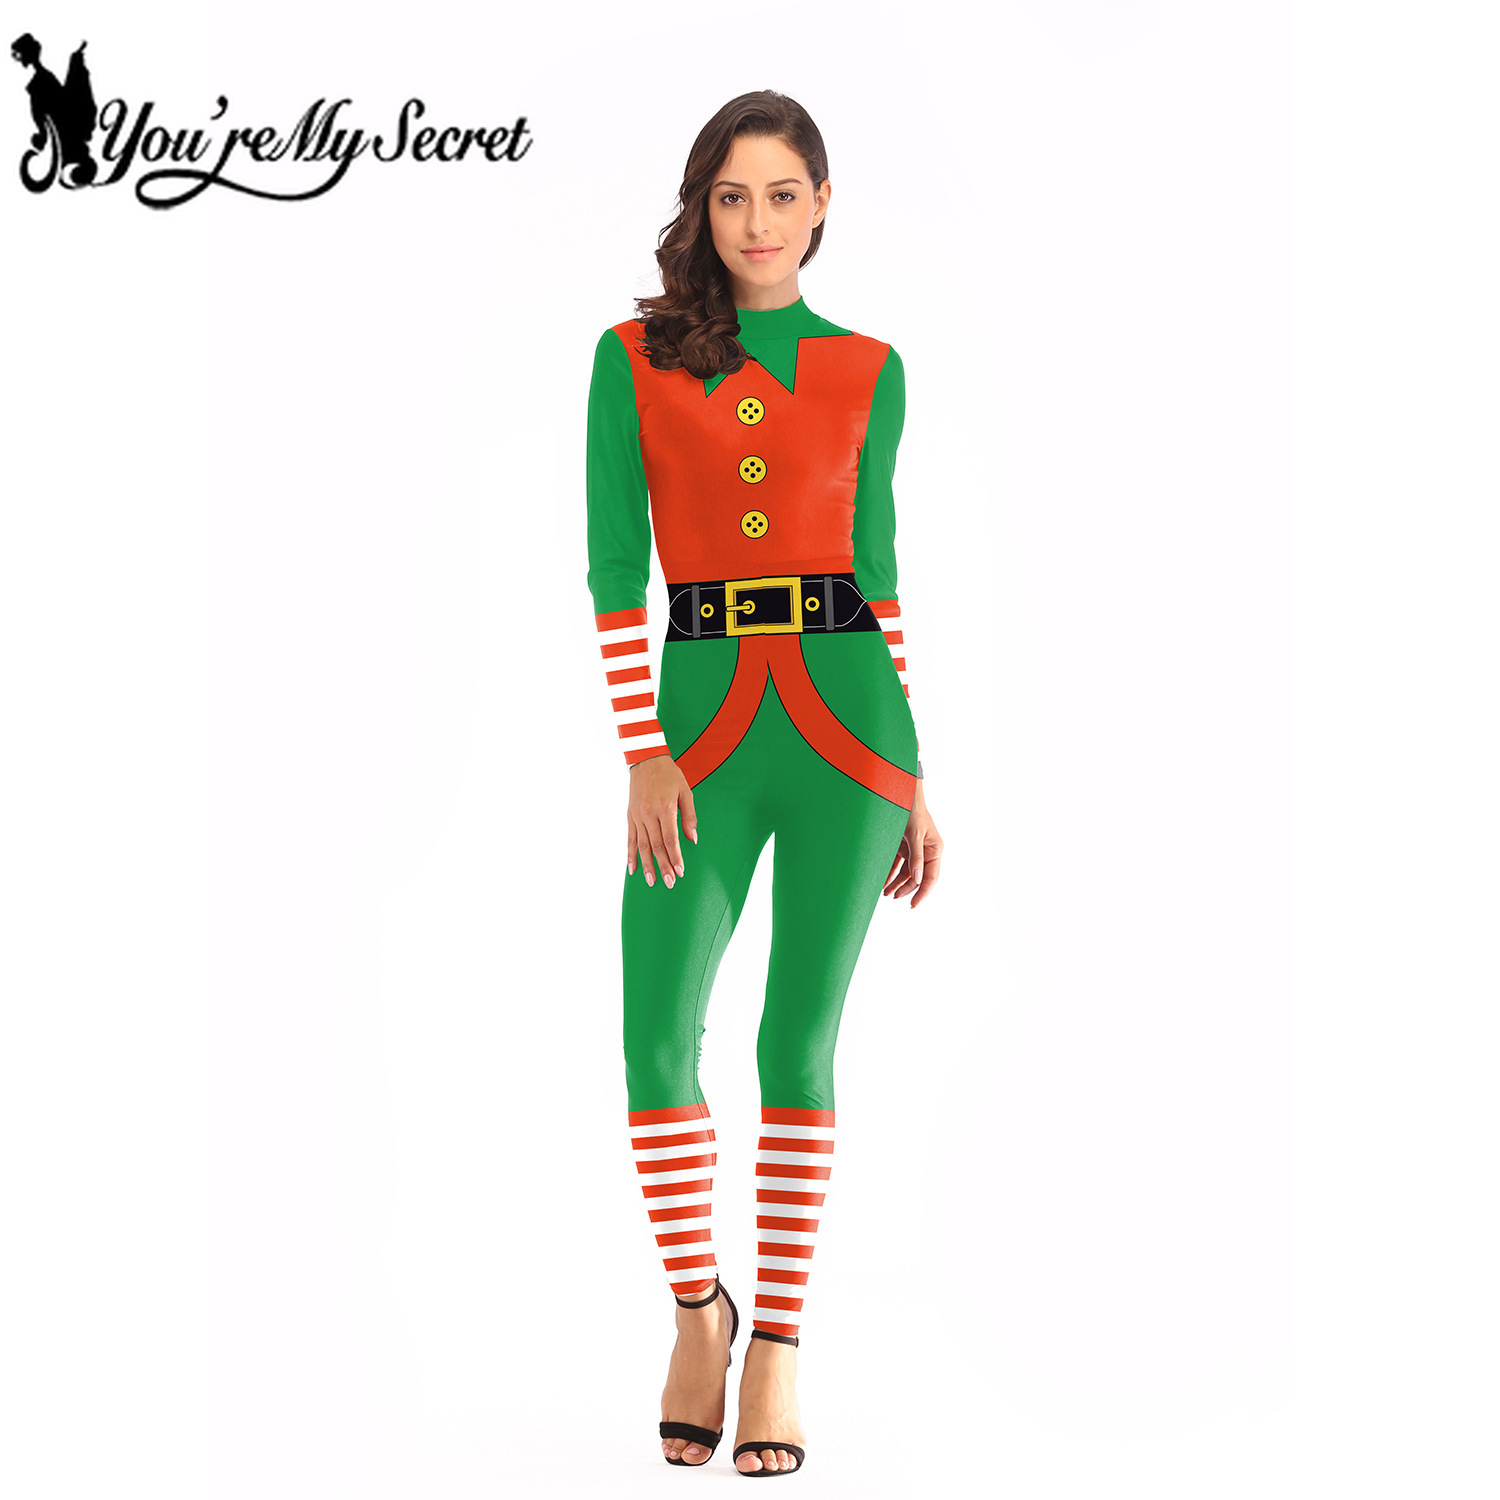 [You're My Secret] Jumpsuits for Women 2019 Christmas Hodiday Party Red Green Striped Classic Design Adult Slim Bodysuit Costume